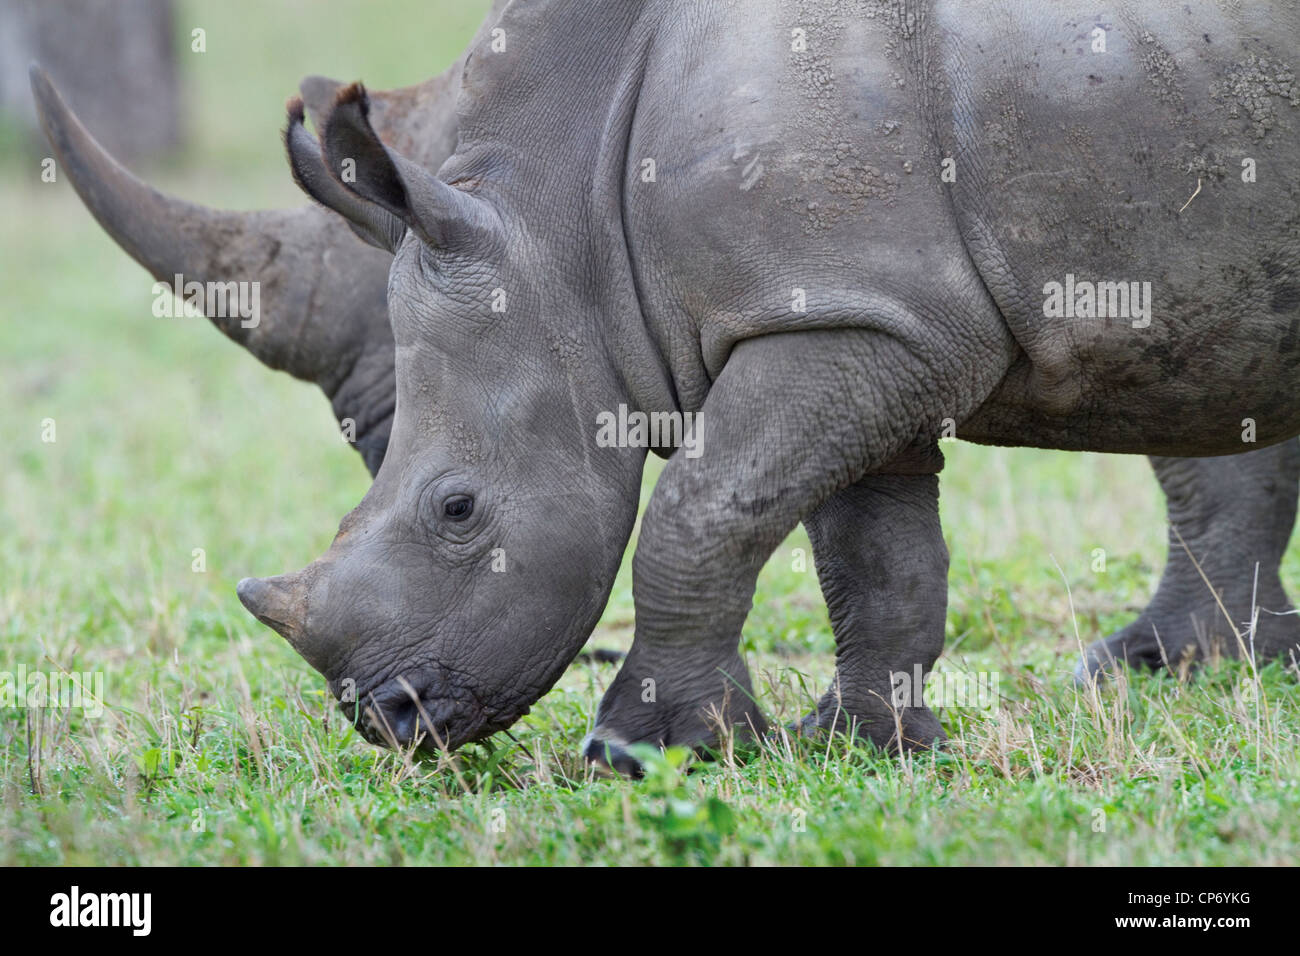 White rhino baby standing side to side with its mother showing the comparative horn sizes - Stock Image